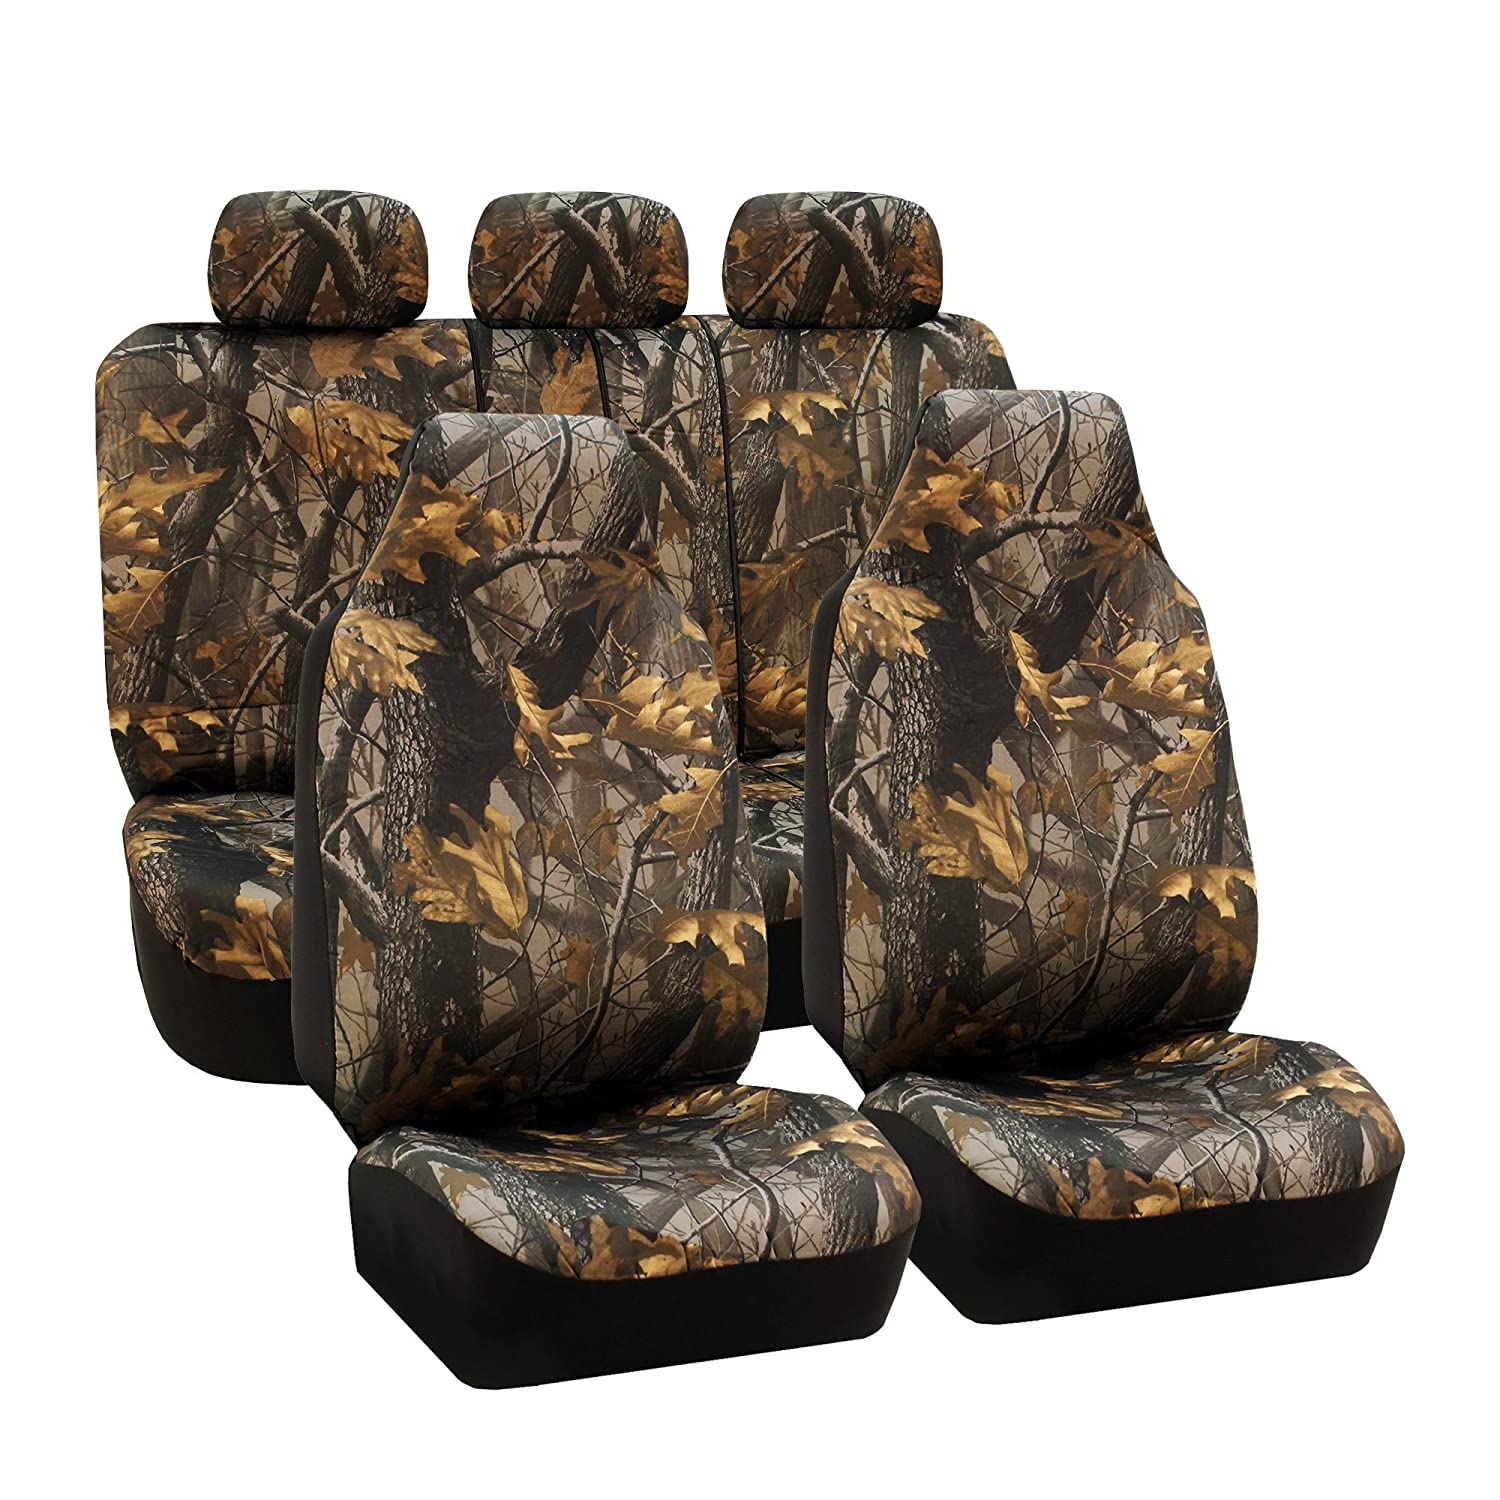 bathroom floors just max realtree images dynasty floor mats duck rt floormat image camo